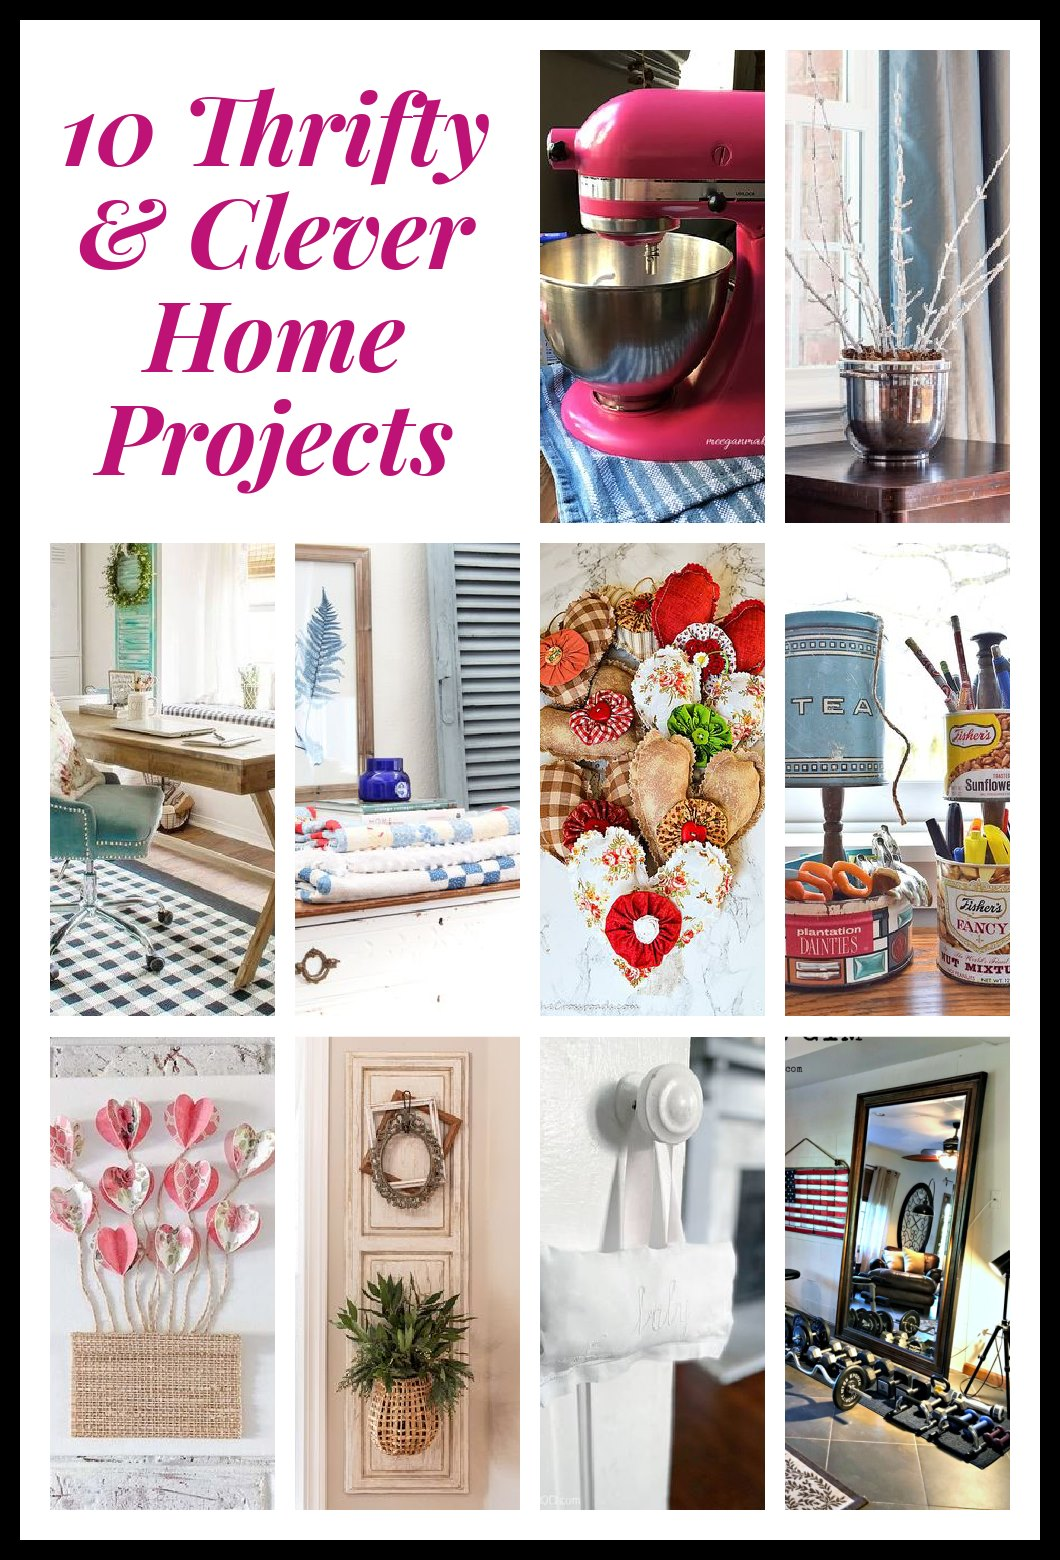 10 Thrifty and Clever Home Projects